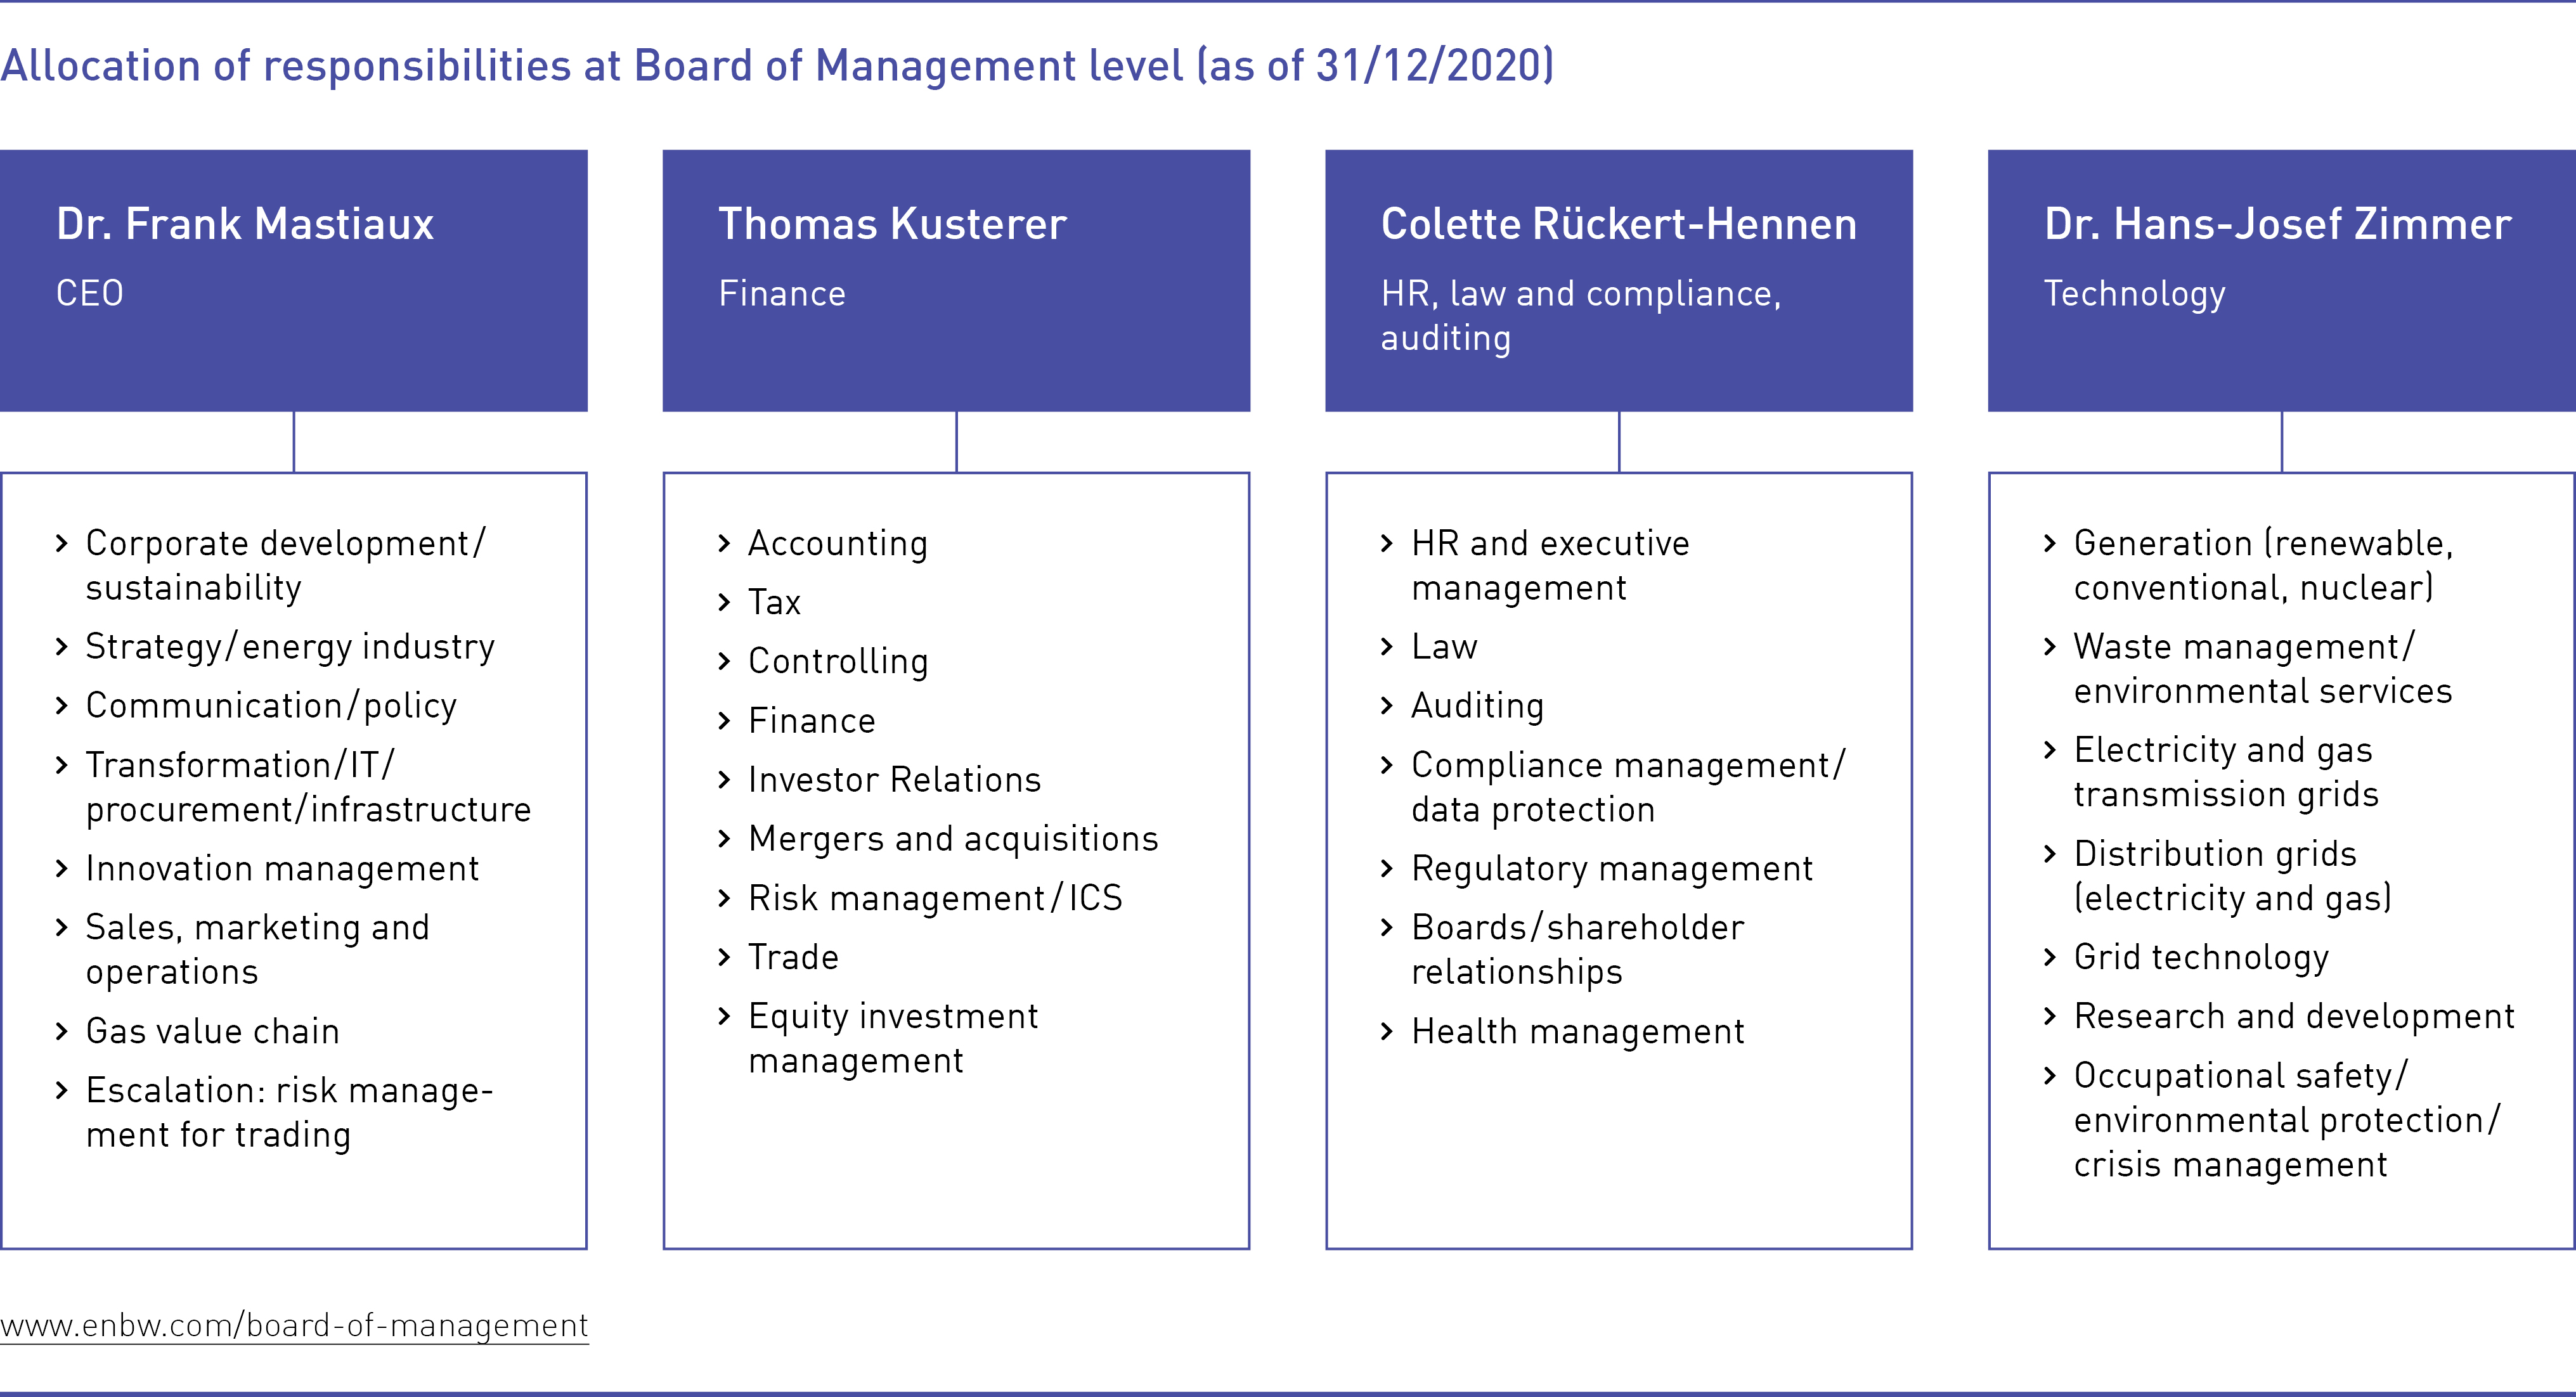 Allocation of responsibilities at Board of Management level 31/12/2020